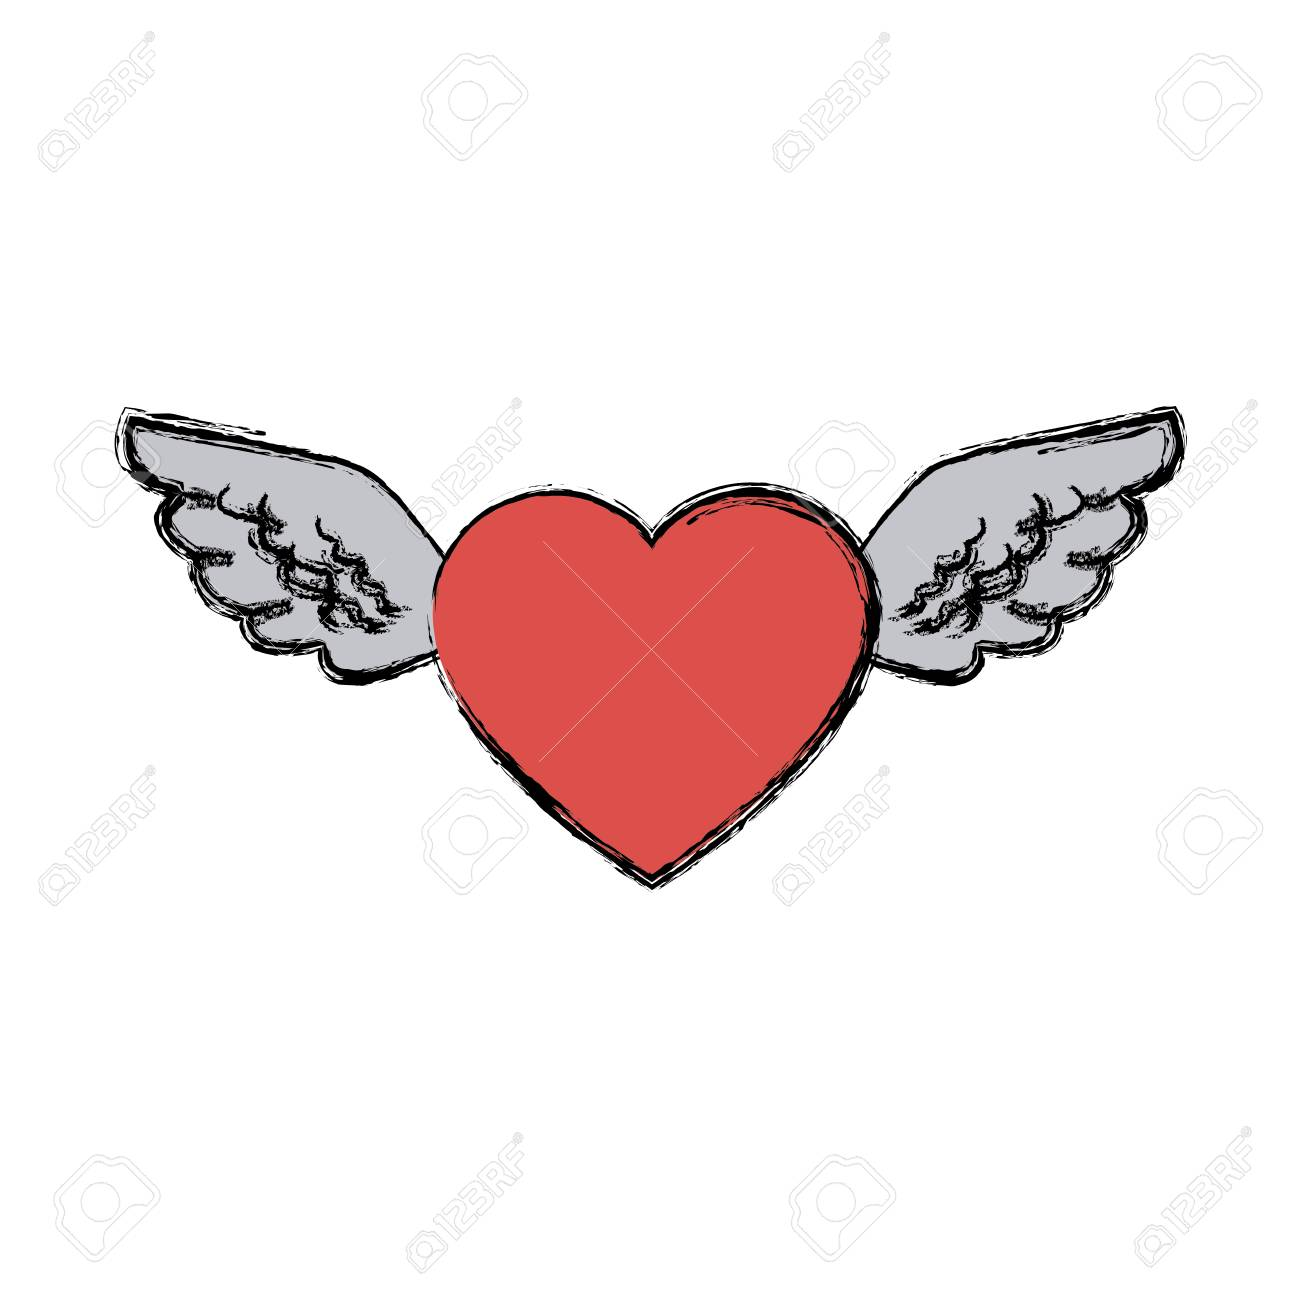 Love heart wings fly tattoo free symbol vector illustration love heart wings fly tattoo free symbol vector illustration stock vector 81165135 buycottarizona Choice Image